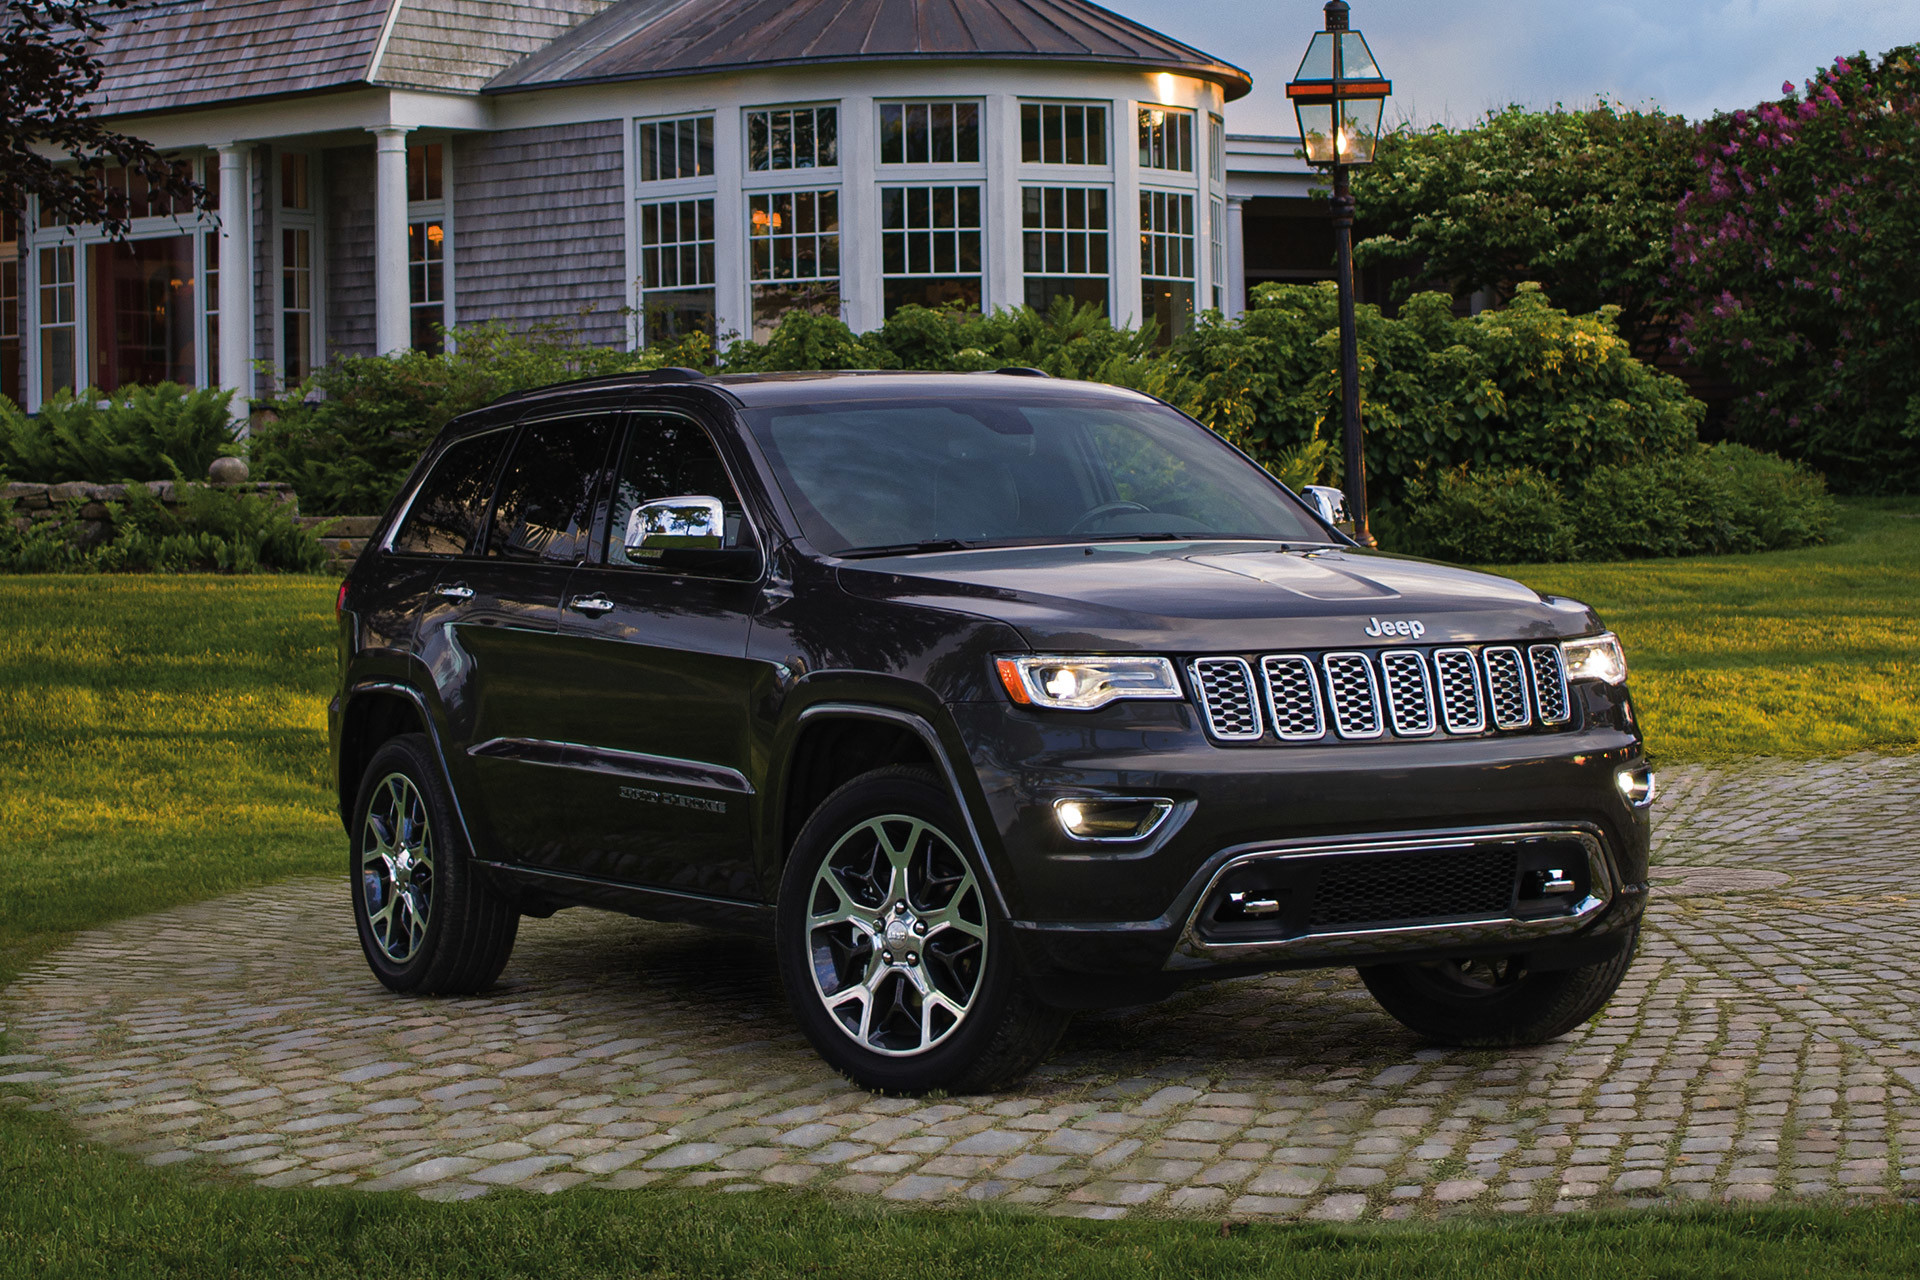 Navy blue Jeep Grand Cherokee parked in front of a large house surrounded by shrubs and grass.